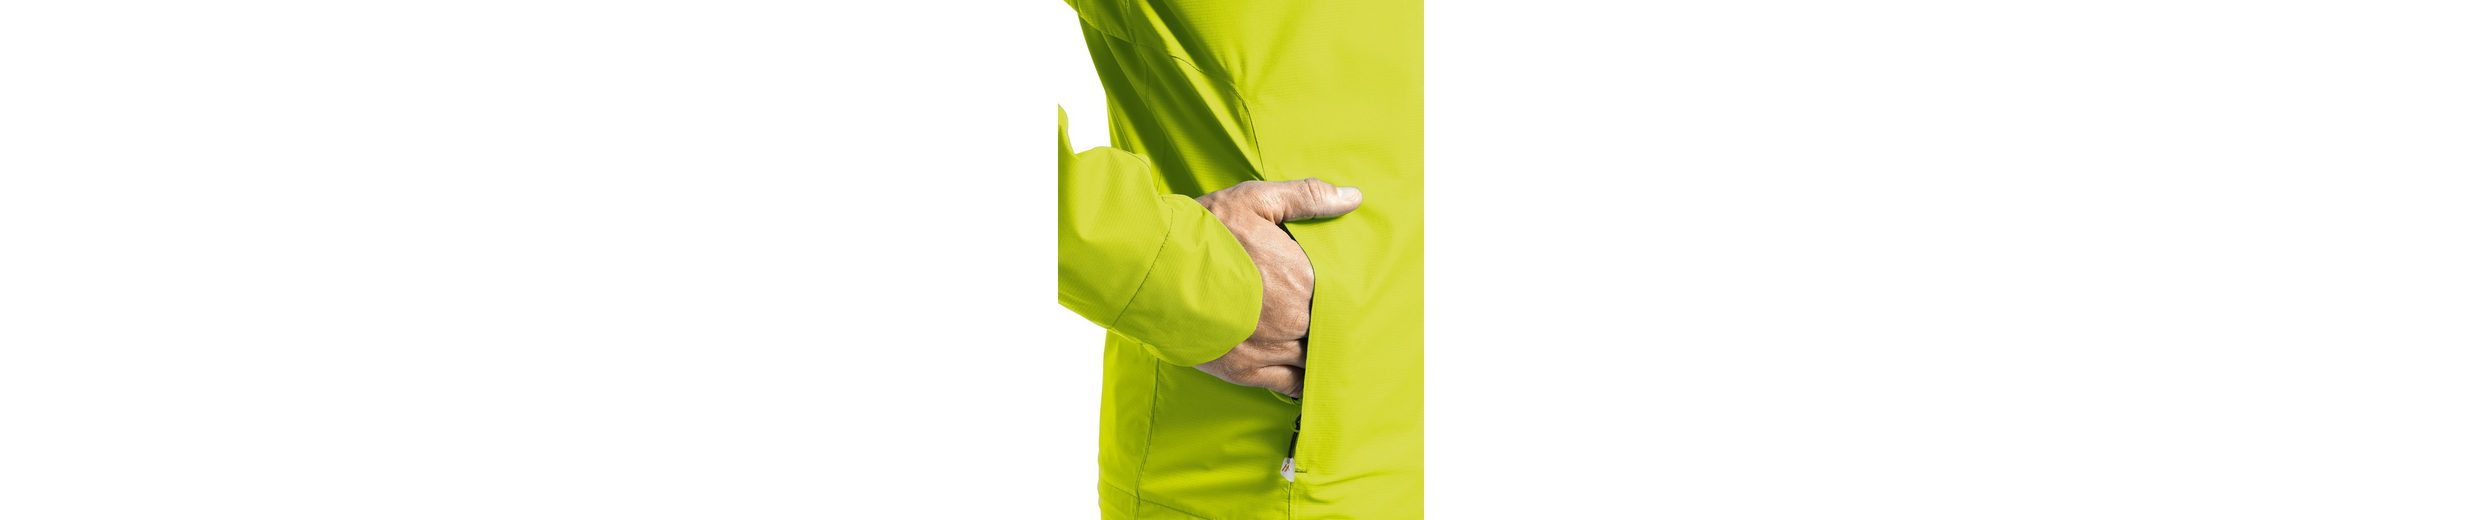 Tour Cycle Maier Sports Funktionsjacke M Cycle Maier Sports Funktionsjacke Tour gTawxq1nF